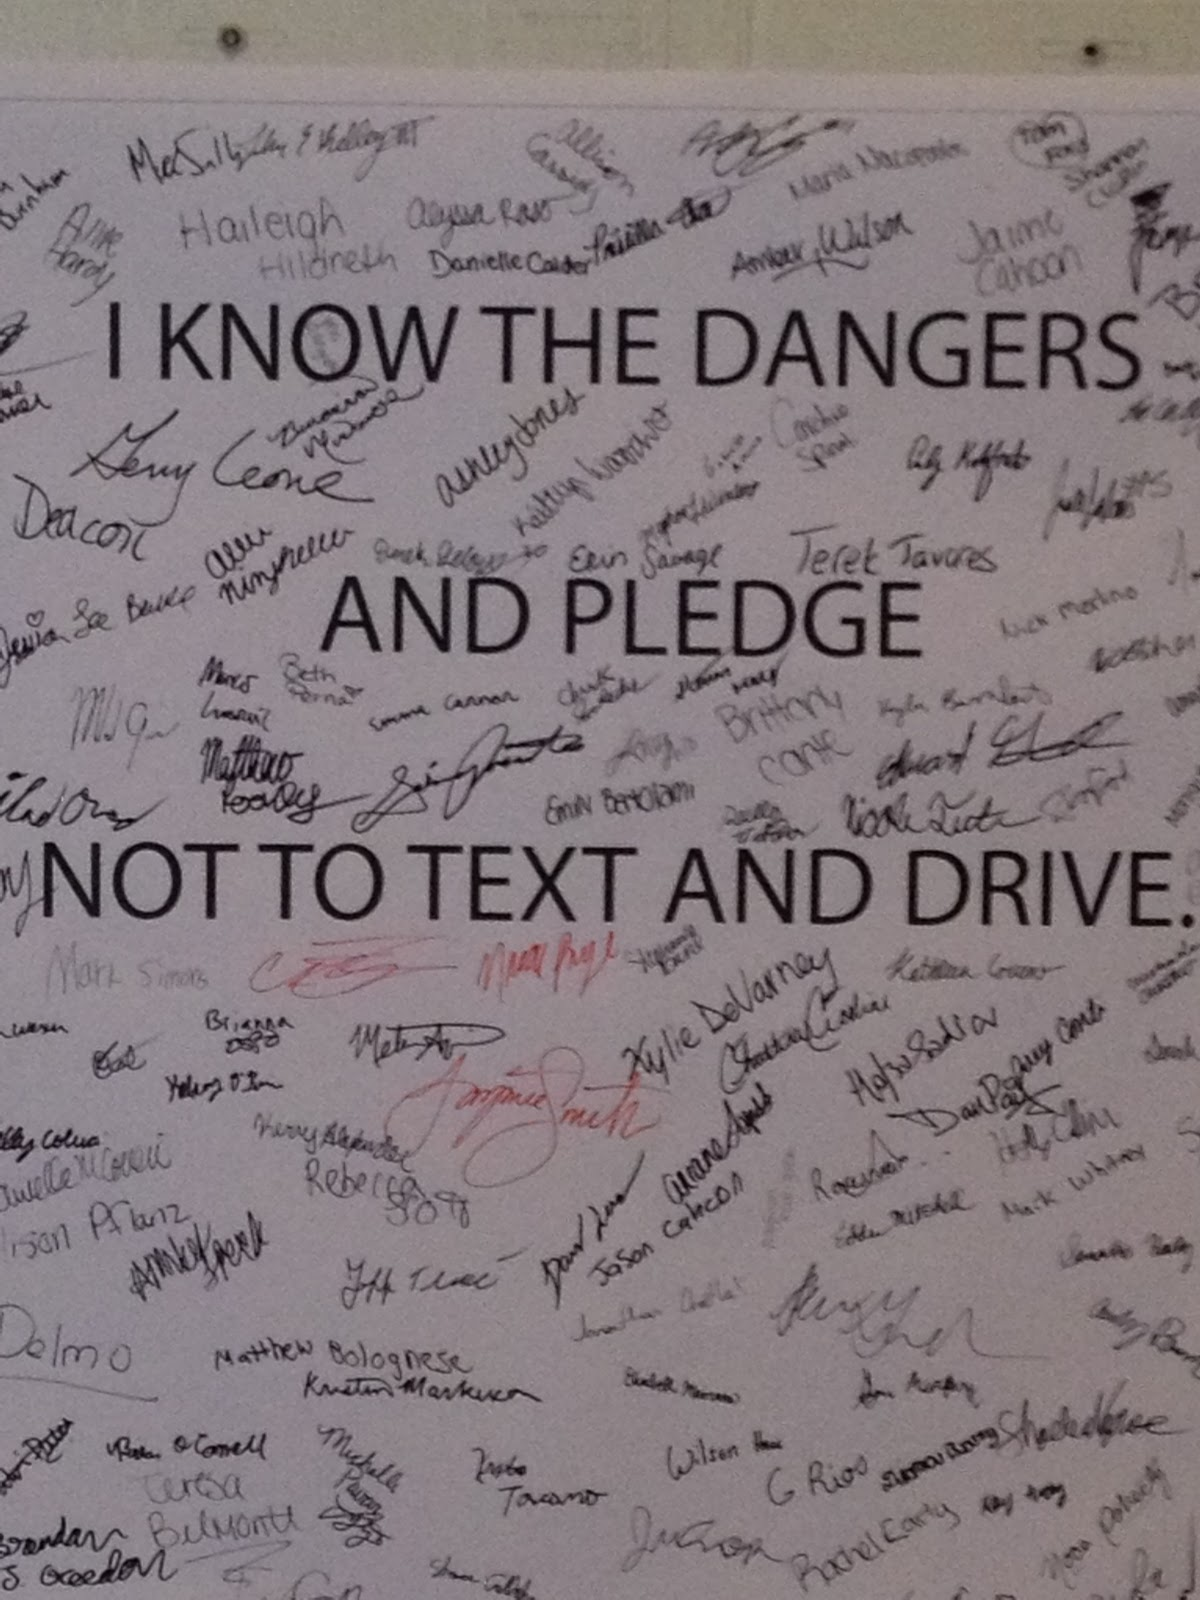 I pledge to not text and drive essay